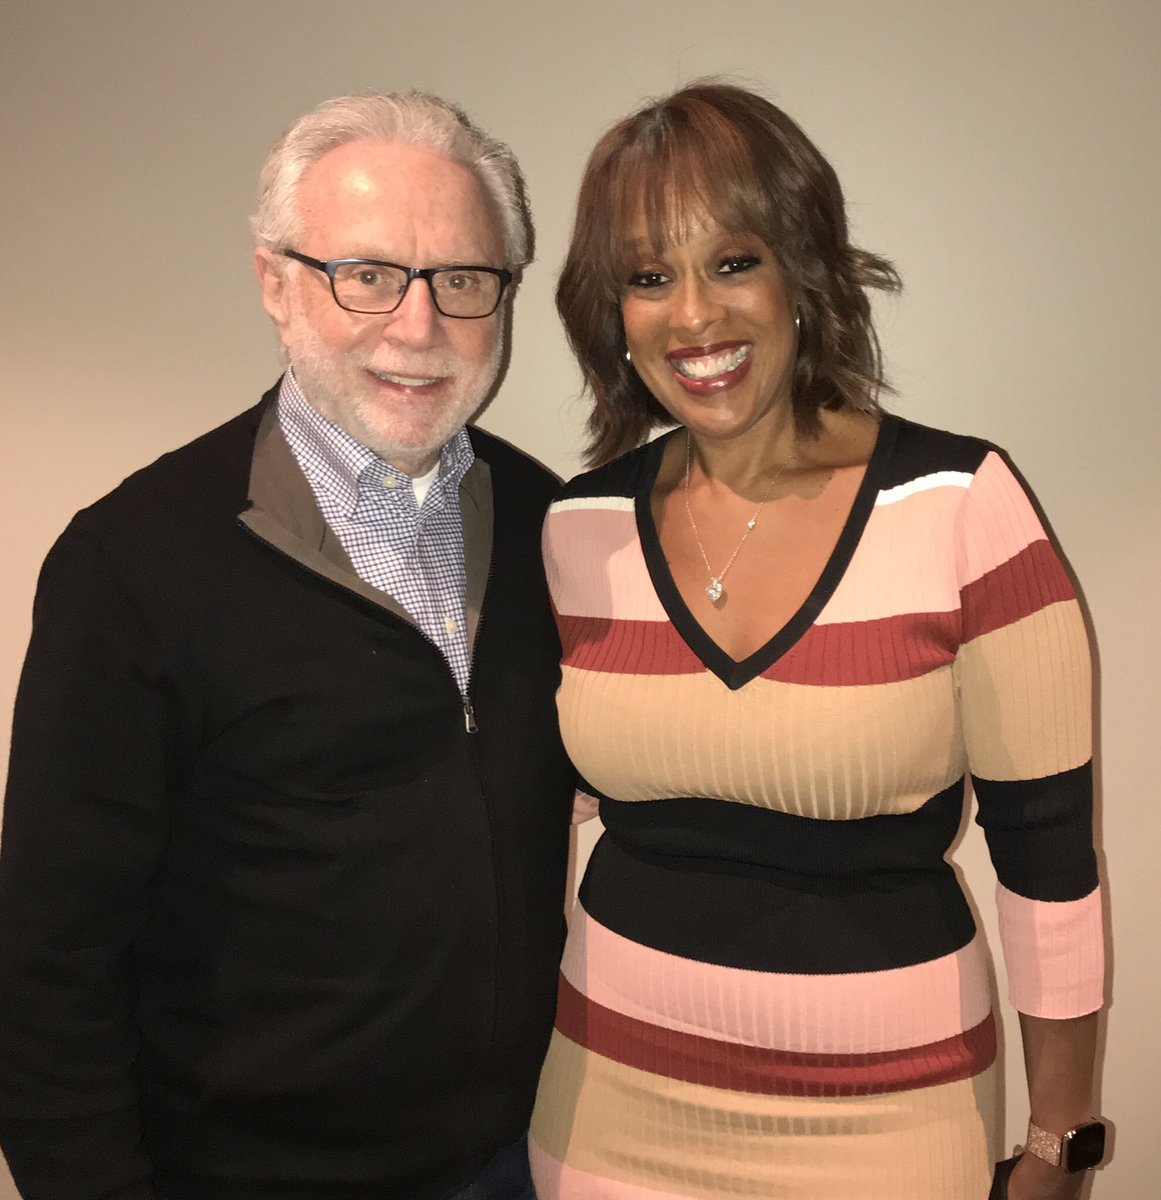 It's always great reconnecting with @GayleKing at the @NBAAllStar weekend.